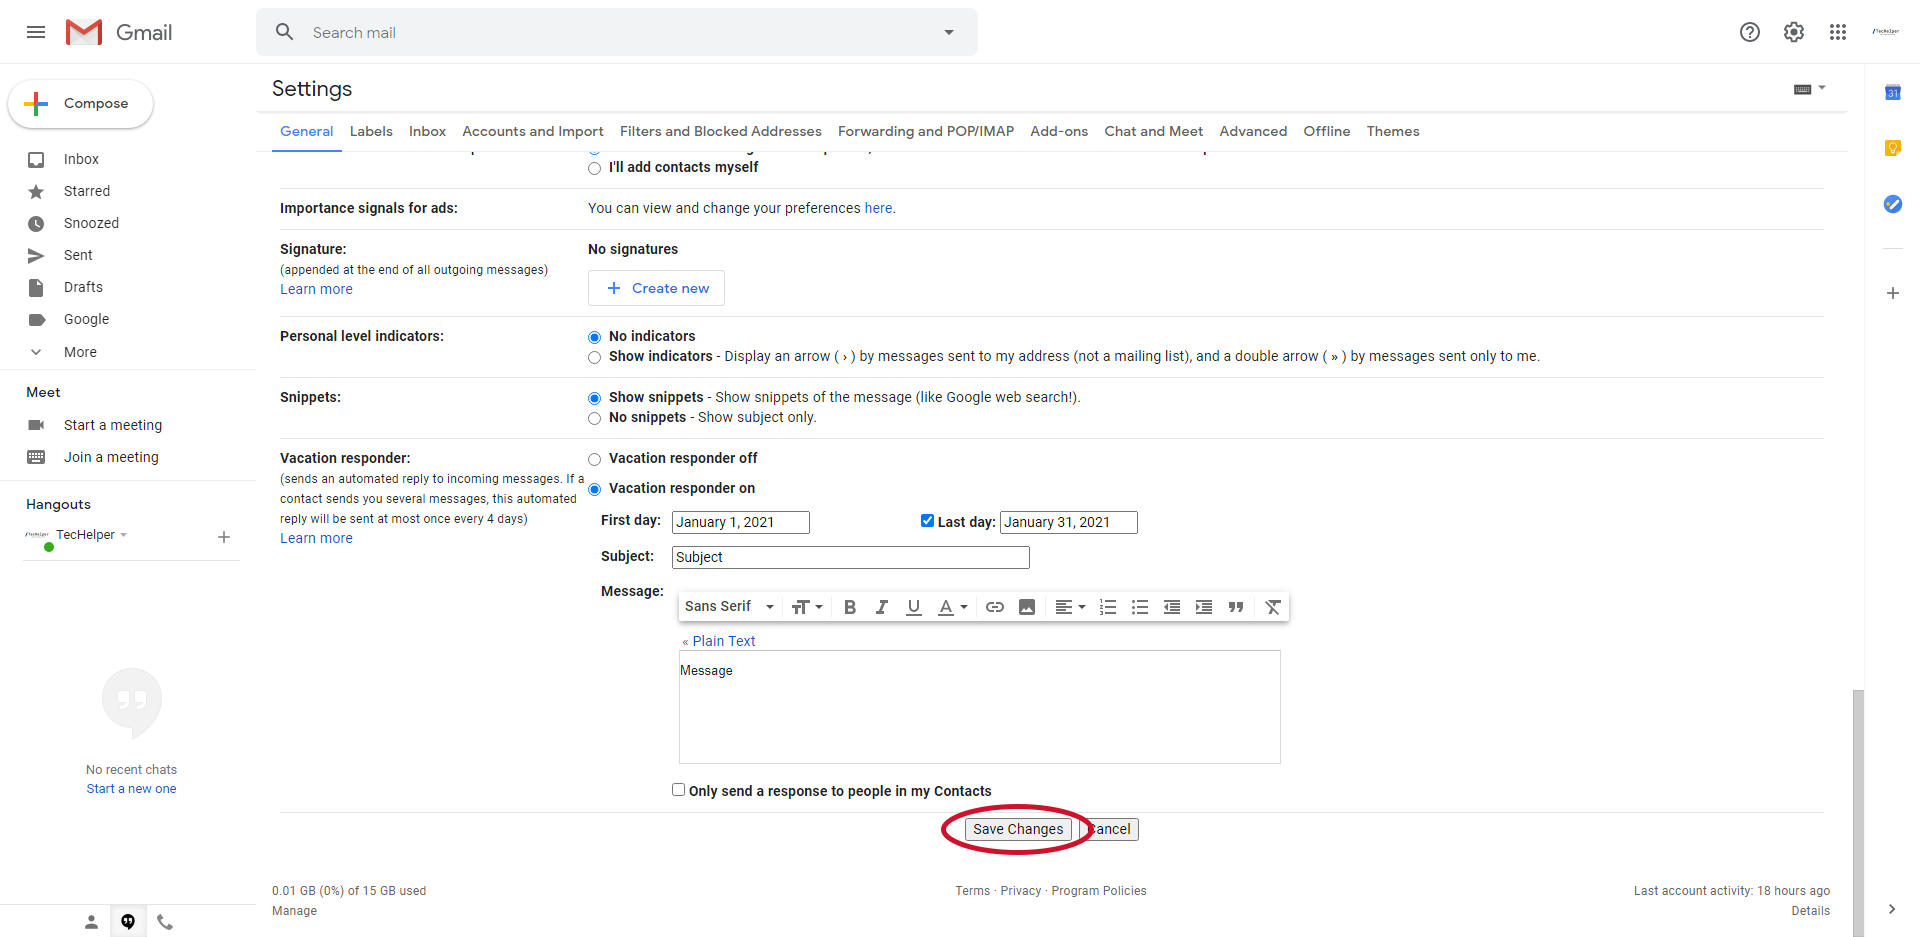 gmail enable vacation responder step 5